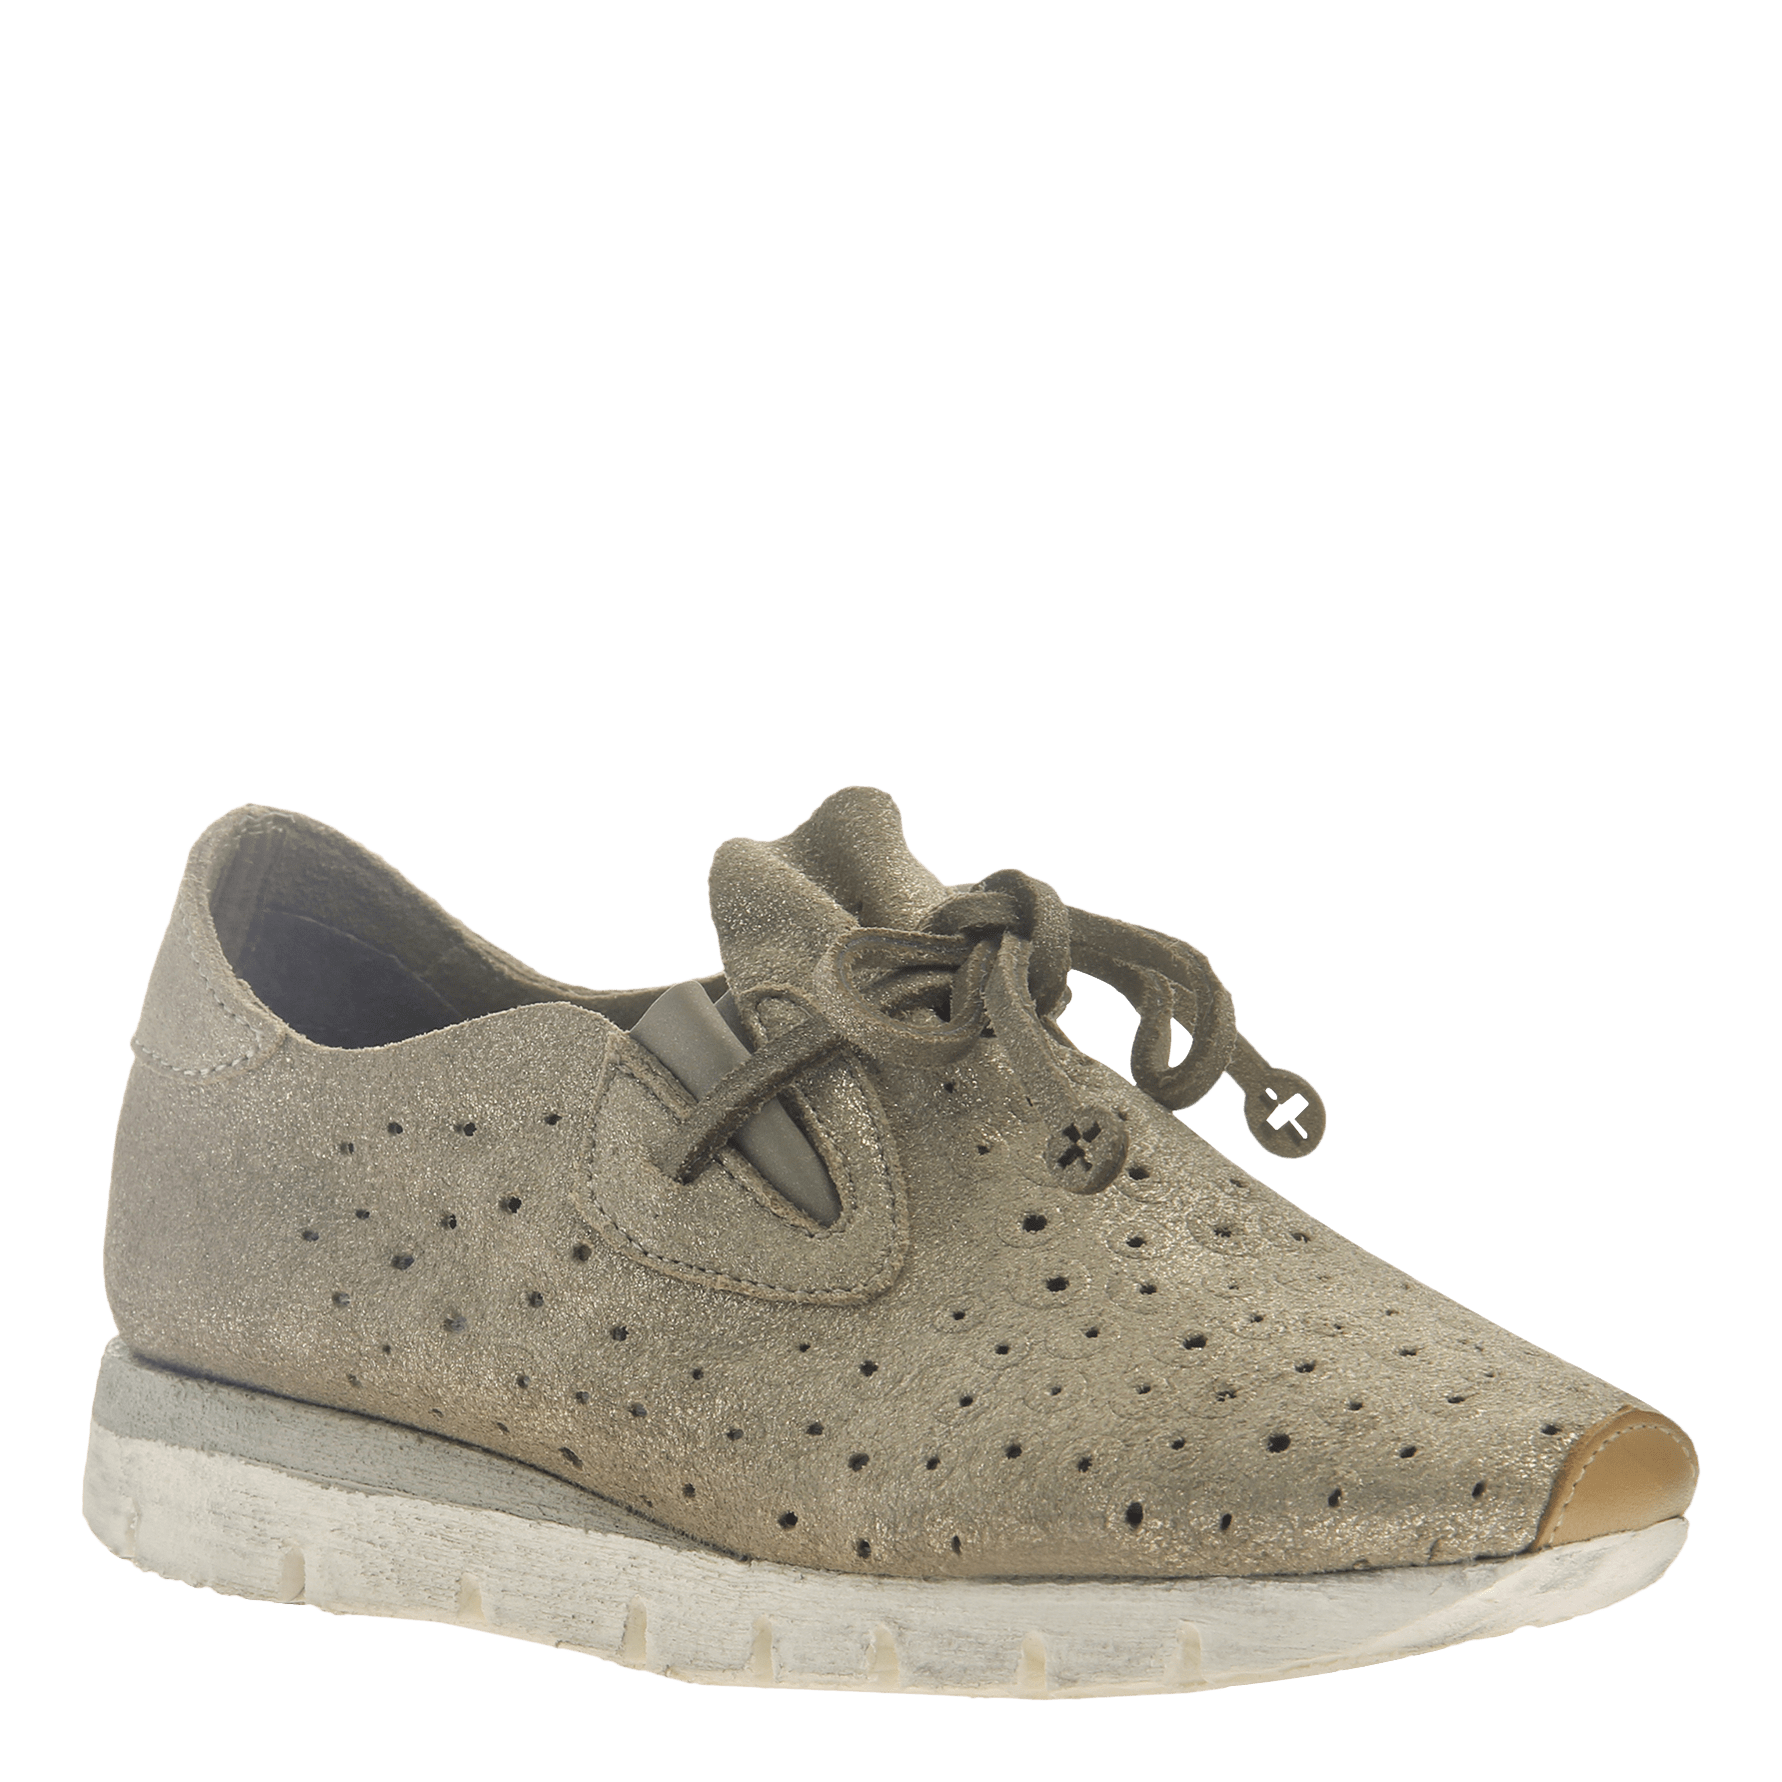 Women's lightweight slip on sneaker Lunar in New Mid Taupe